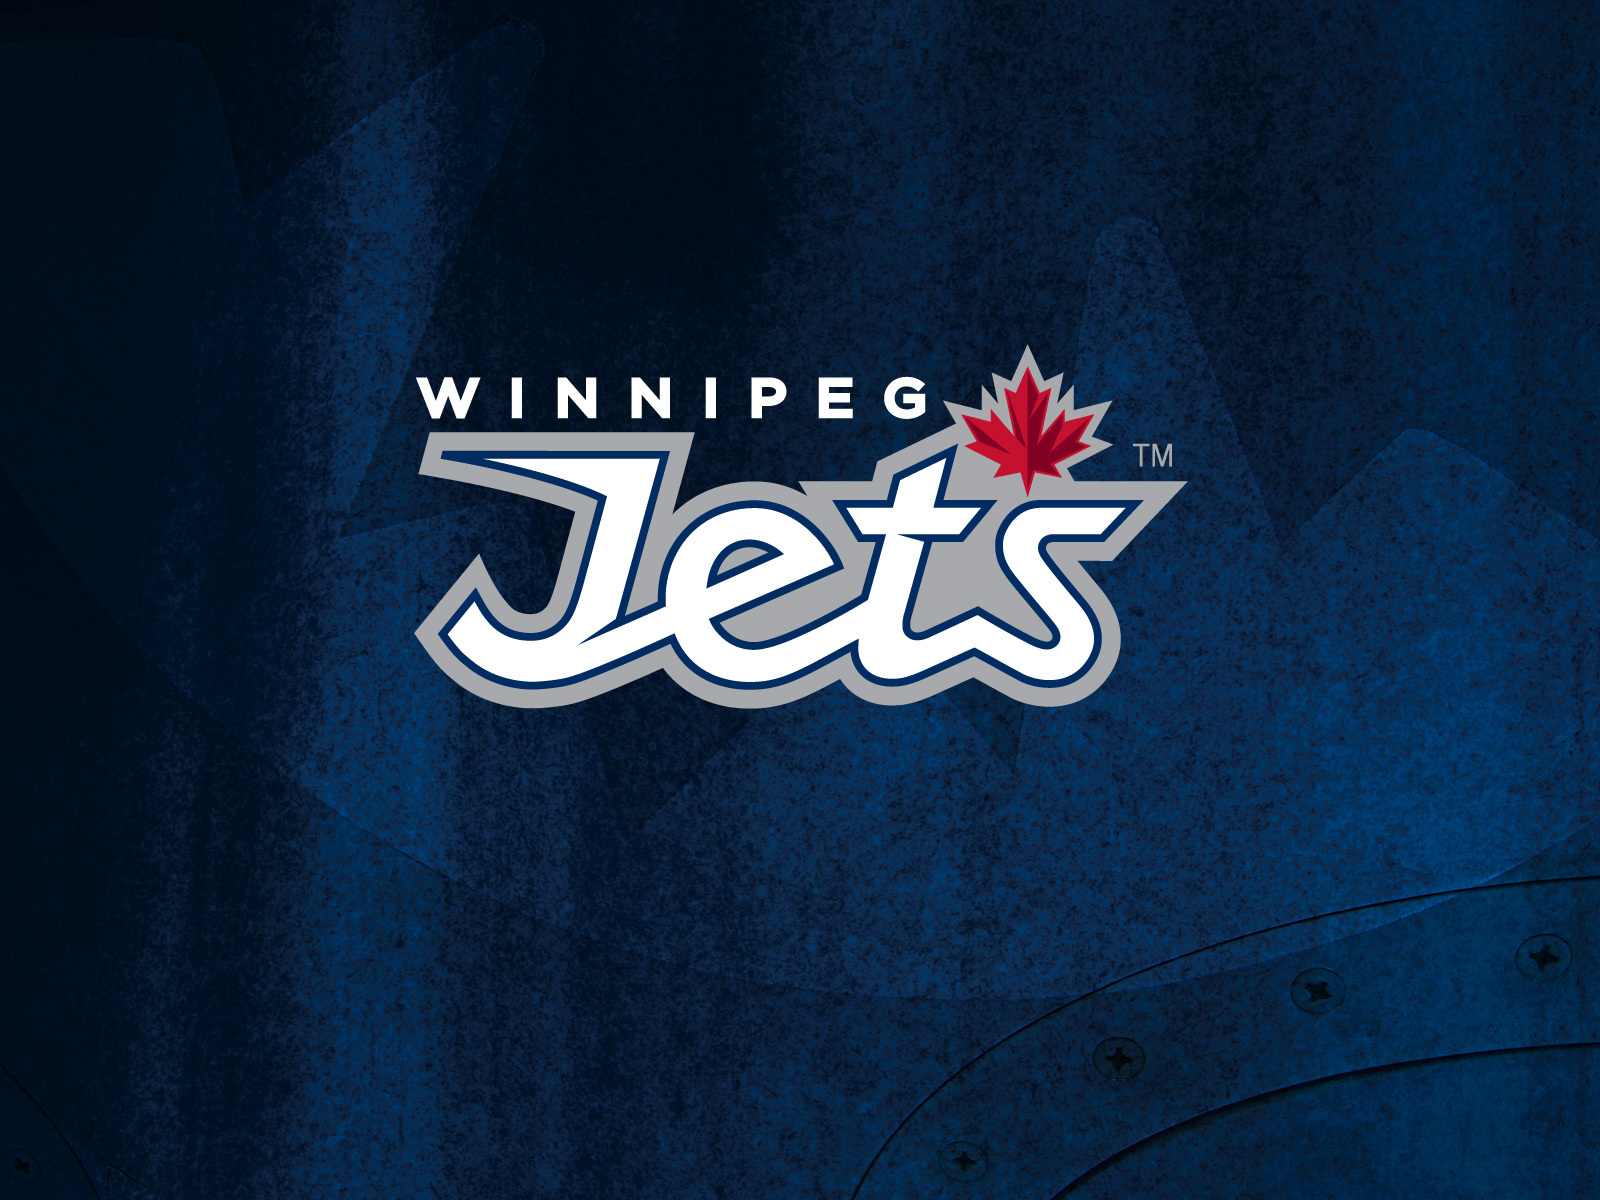 Winnipeg Jets Wallpapers 1080p 92FP56X   4USkY 1600x1200